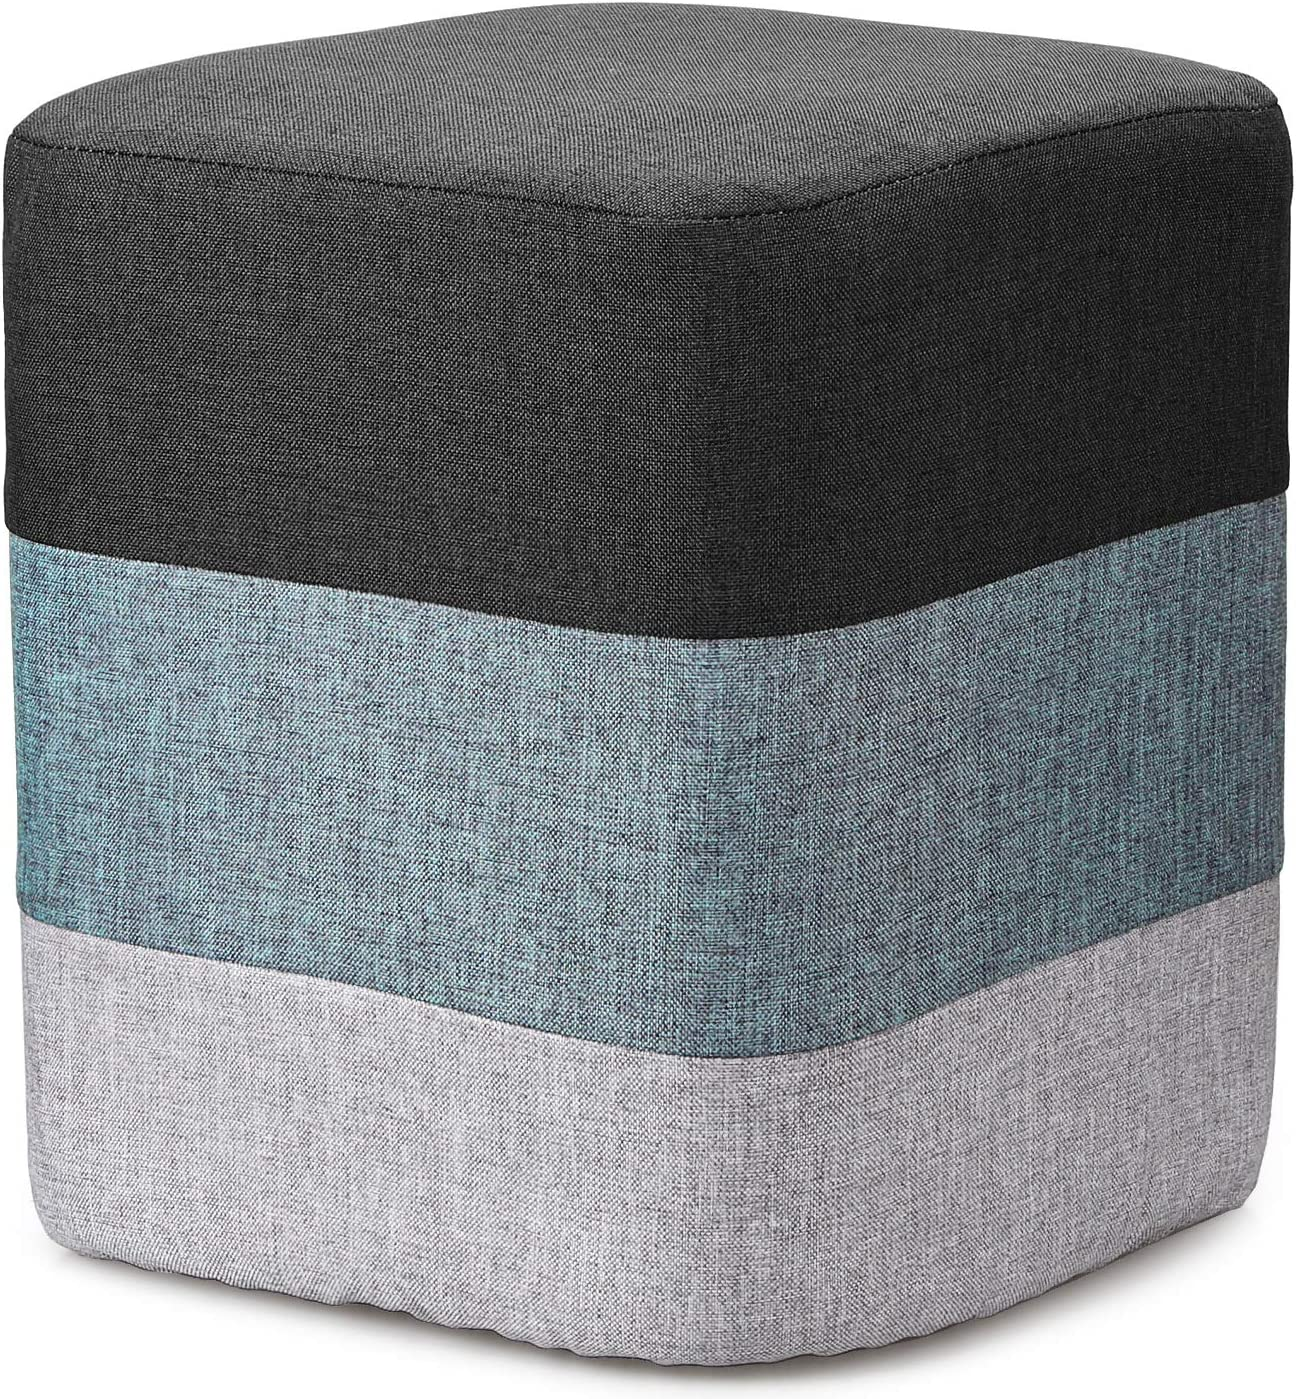 COQOFA Small Ottoman and Foot Rest Foot Stool Grey